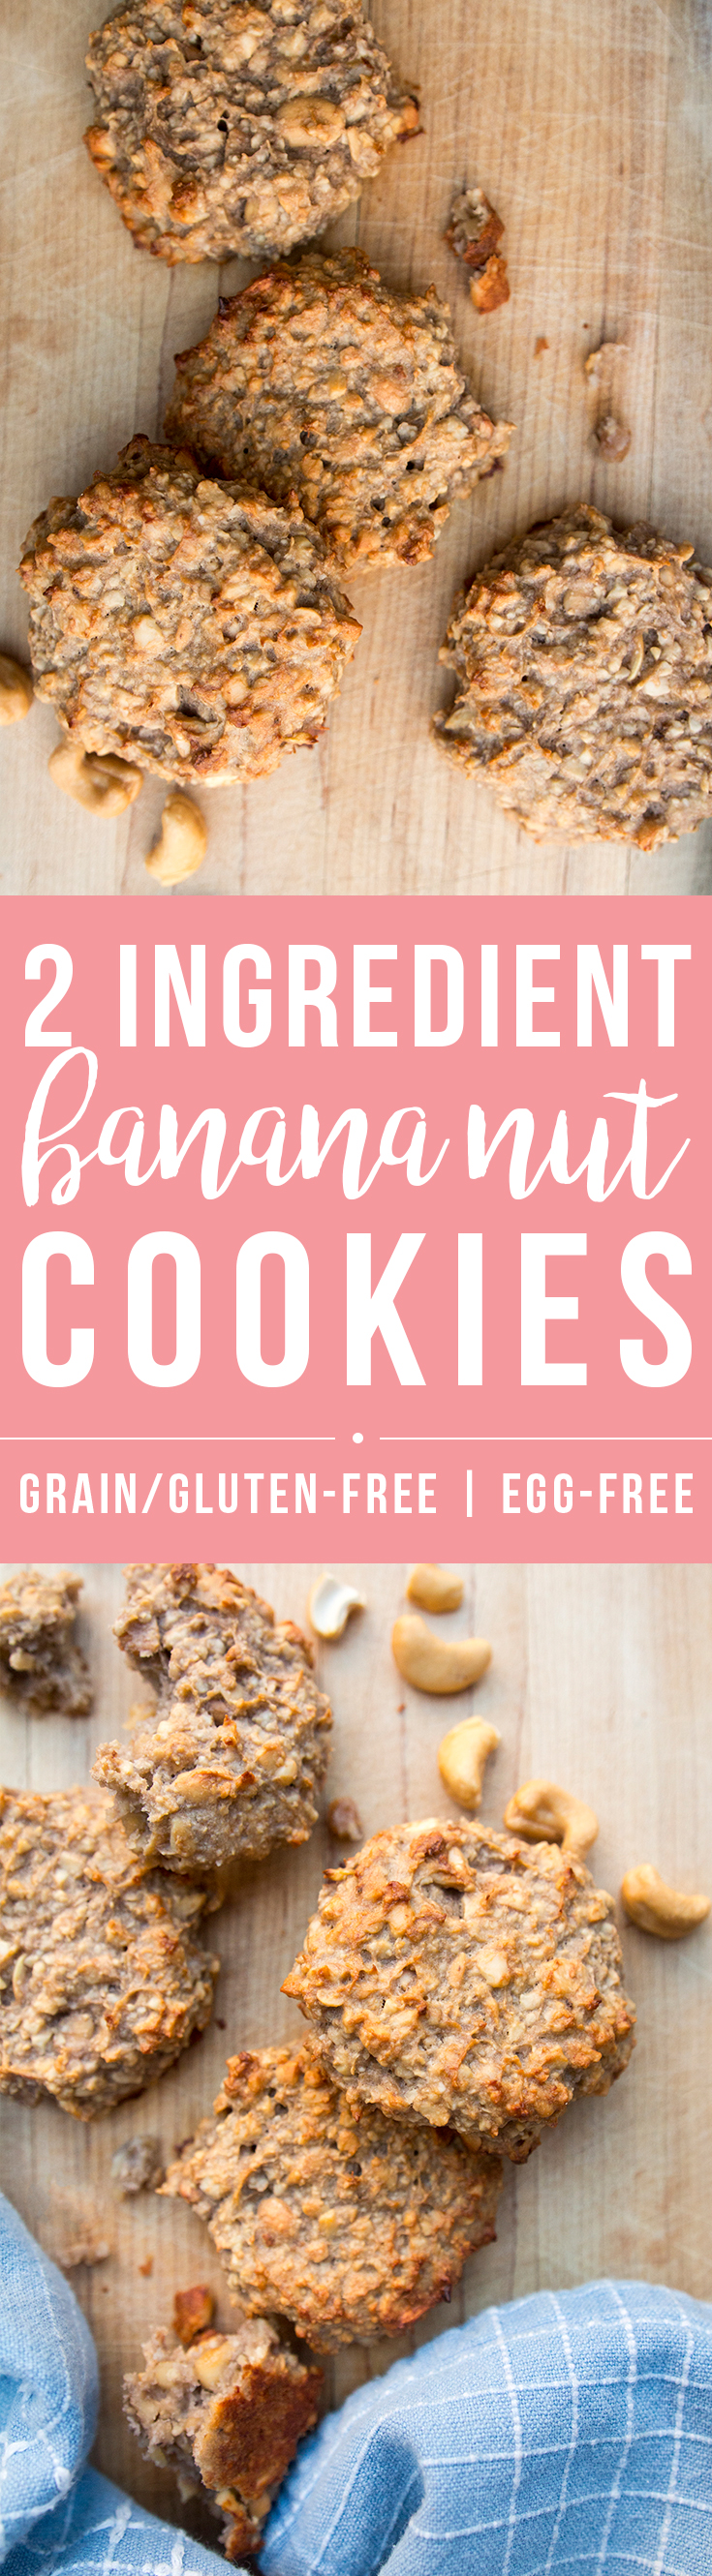 These amazingly simple 2 Ingredient Banana Nut Cookies are a quick, healthy, versatile snack as is or a great starting point to play with add-ins. | Fresh Planet Flavor